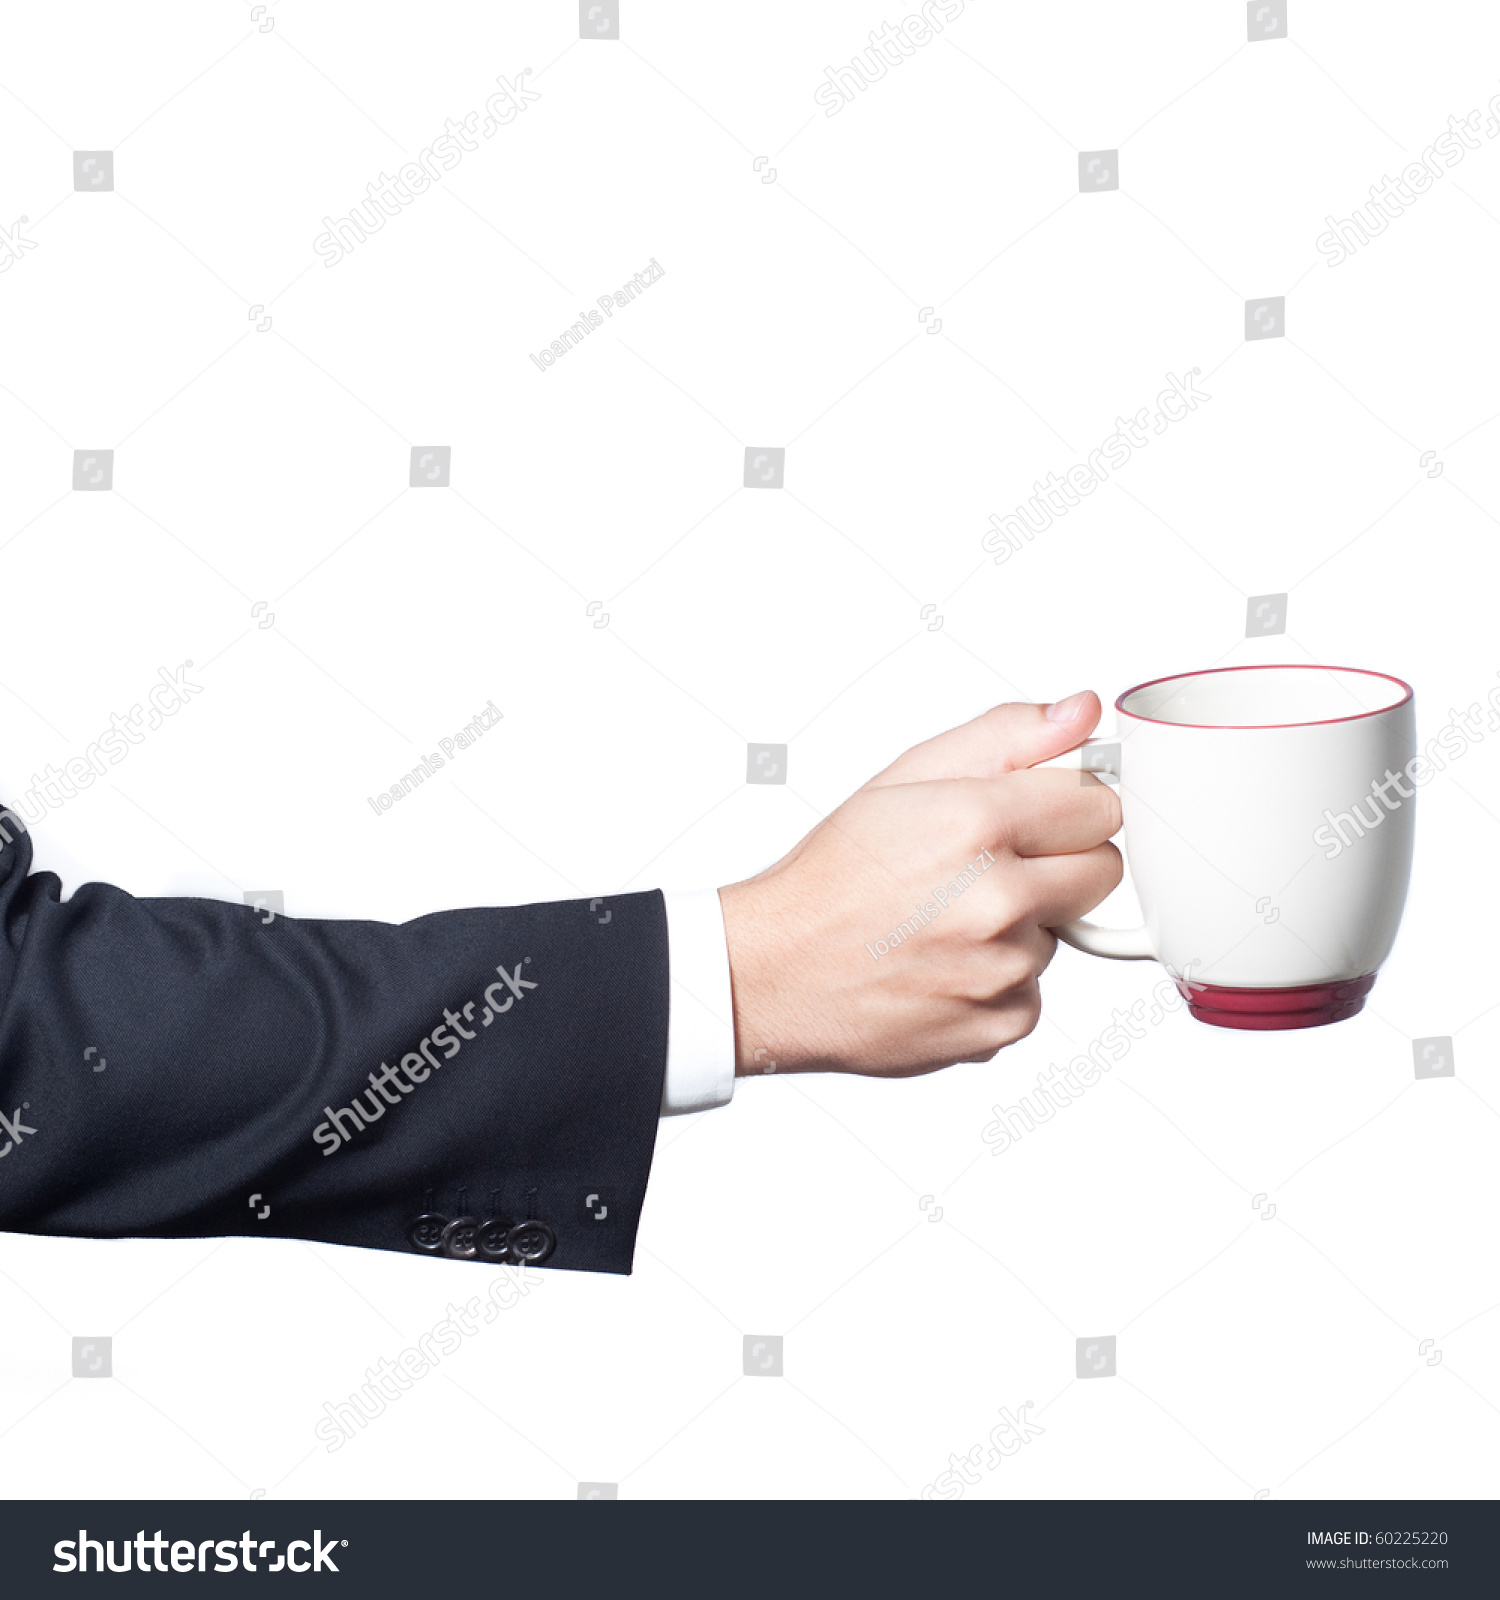 Technology Management Image: Businessman Hand Holding A Cup Of Coffee On White